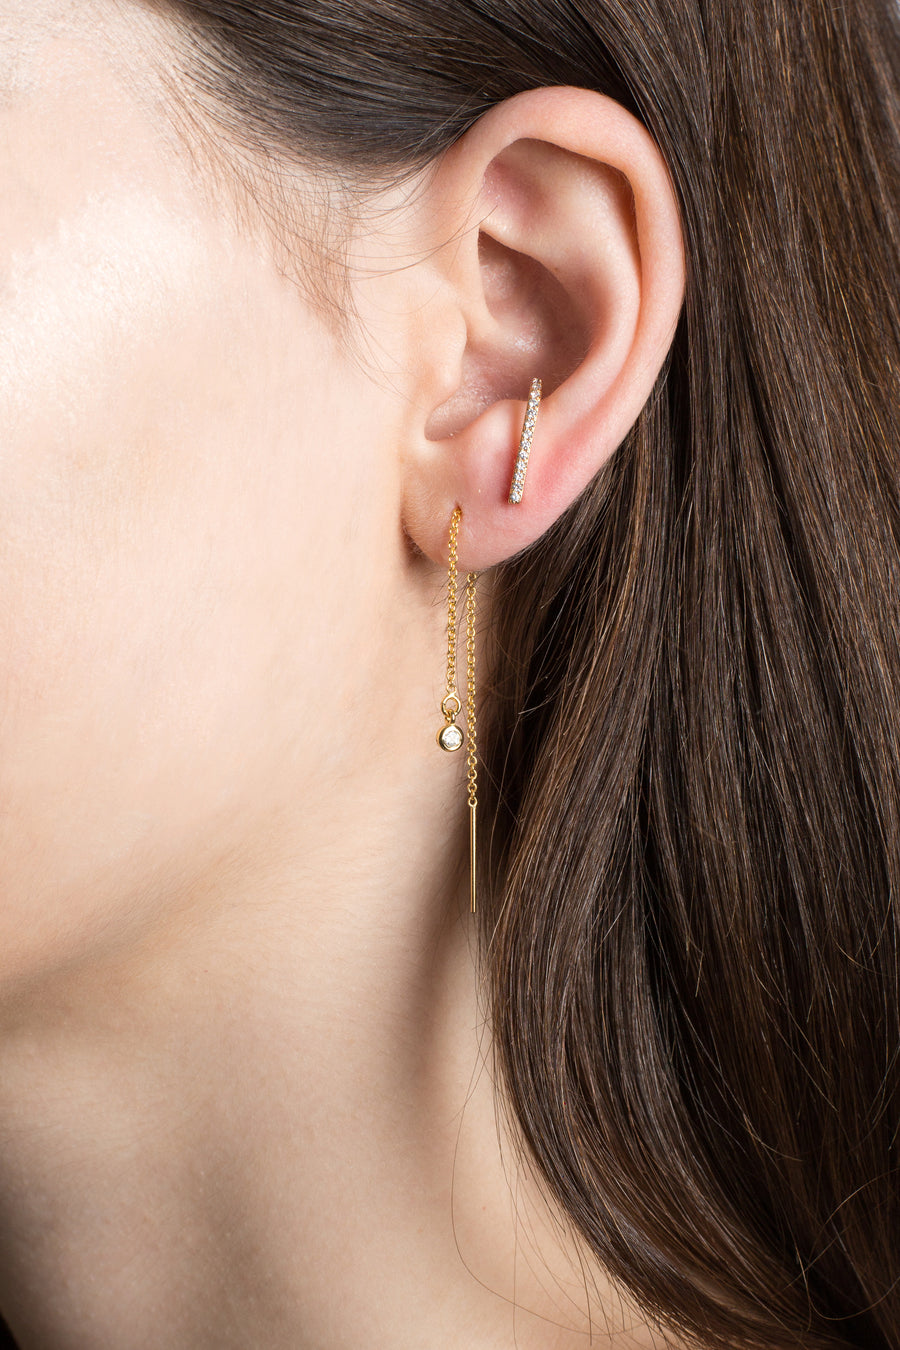 Europa earring threaders (Color options)